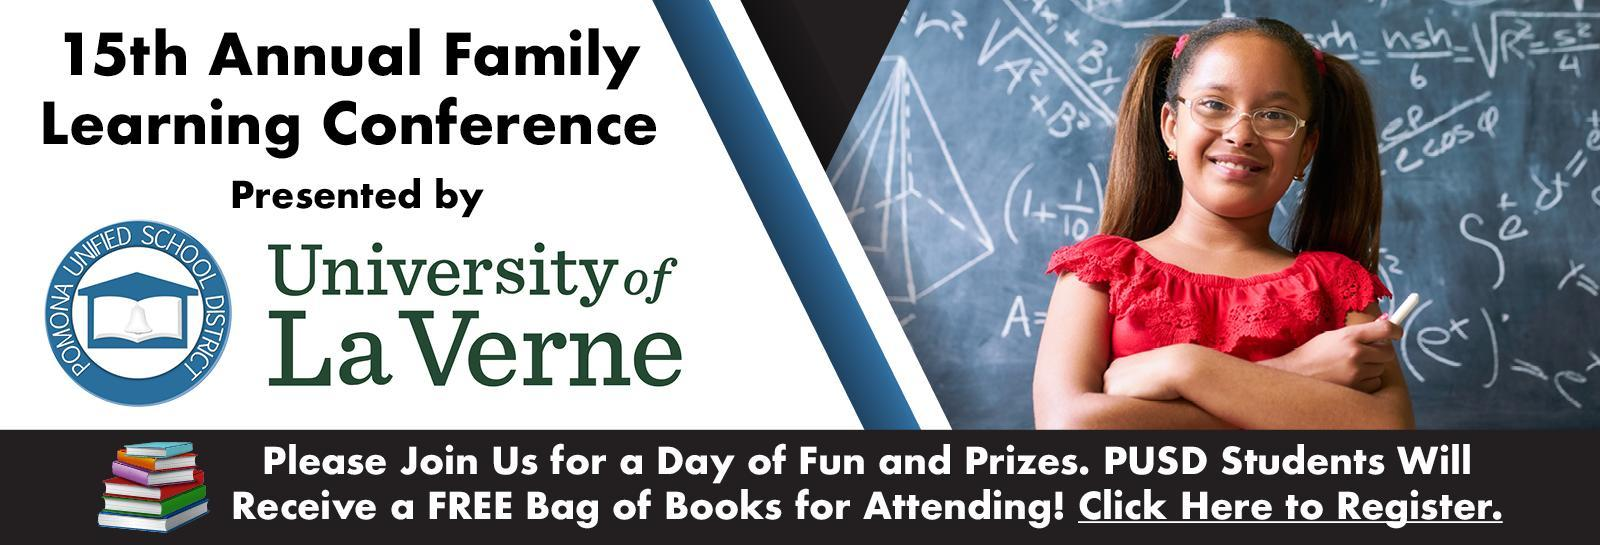 Family Learning Conference